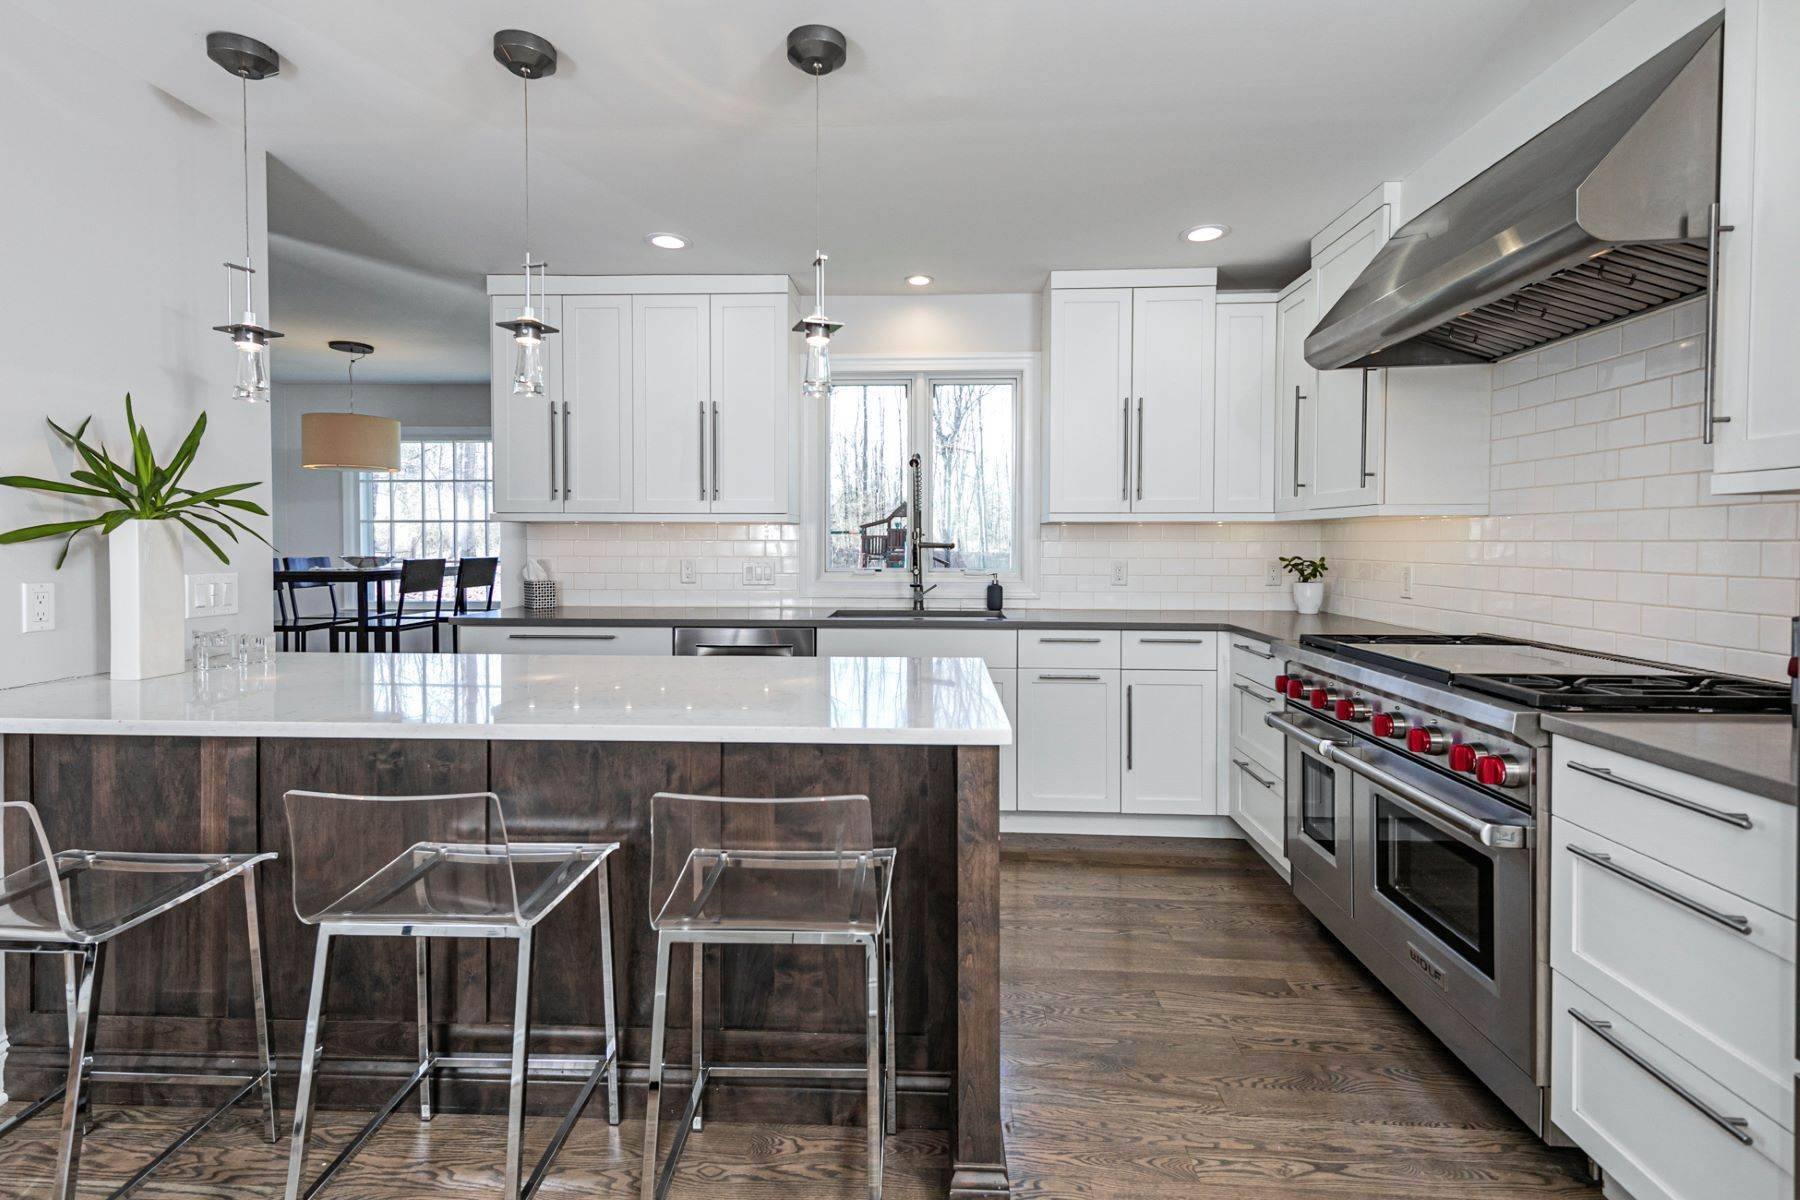 12. Single Family Homes for Sale at A New Kitchen And Updated Baths Make This Home Sparkle 91 West Shore Drive, Pennington, New Jersey 08534 United States